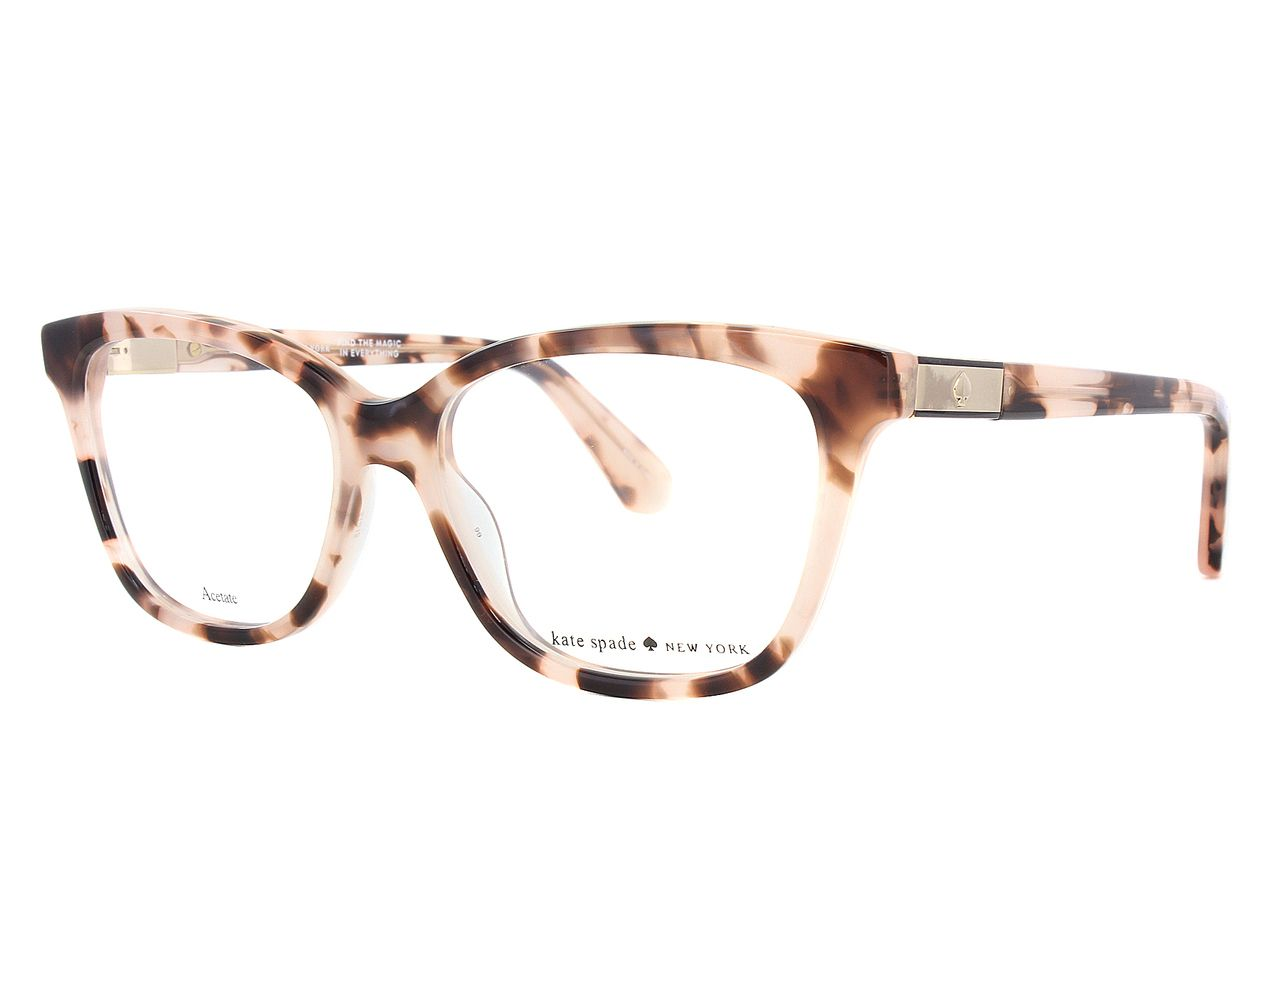 Image result for kate spade glasses havana | Lillie Beth Glasses ...